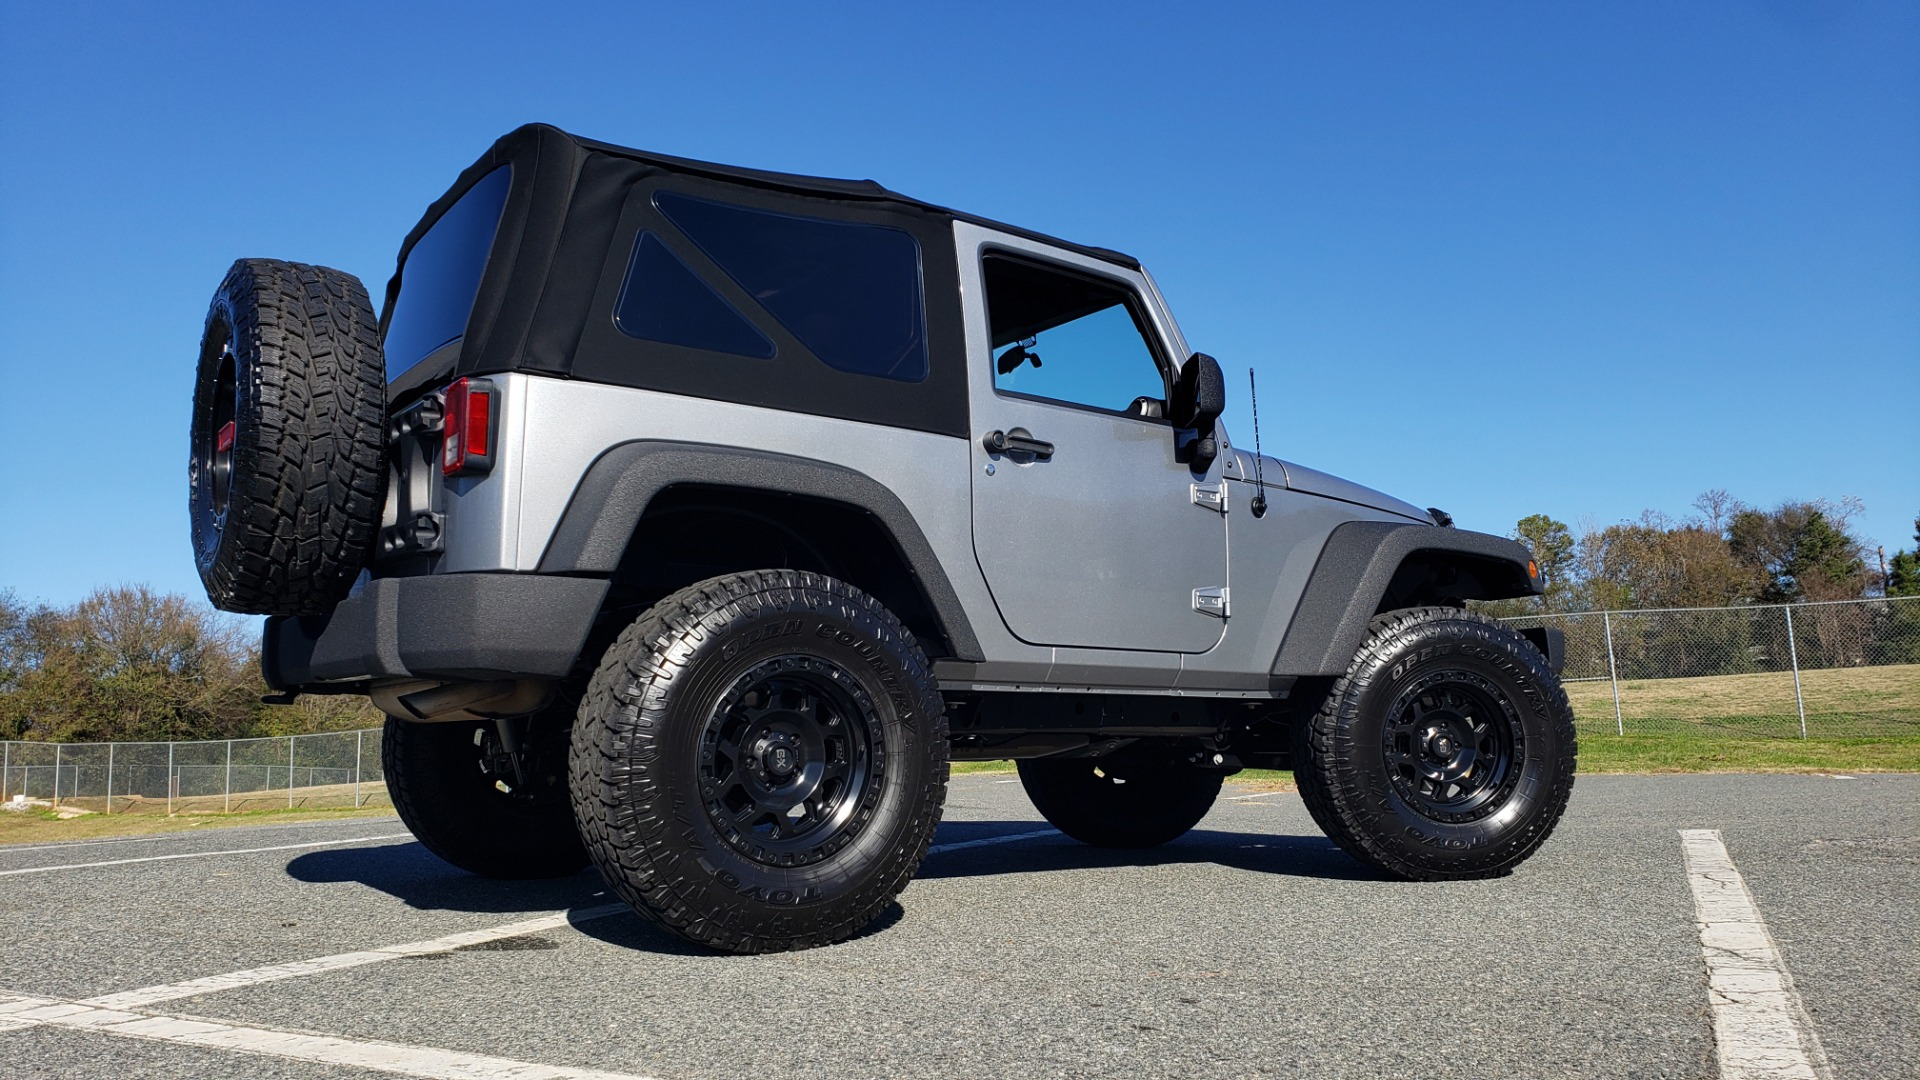 Used 2017 Jeep WRANGLER SPORT 4X4 / 3.6L V6 / MANUAL / AIR / LED LIGHTING / TOW GRP / AL for sale $26,495 at Formula Imports in Charlotte NC 28227 3